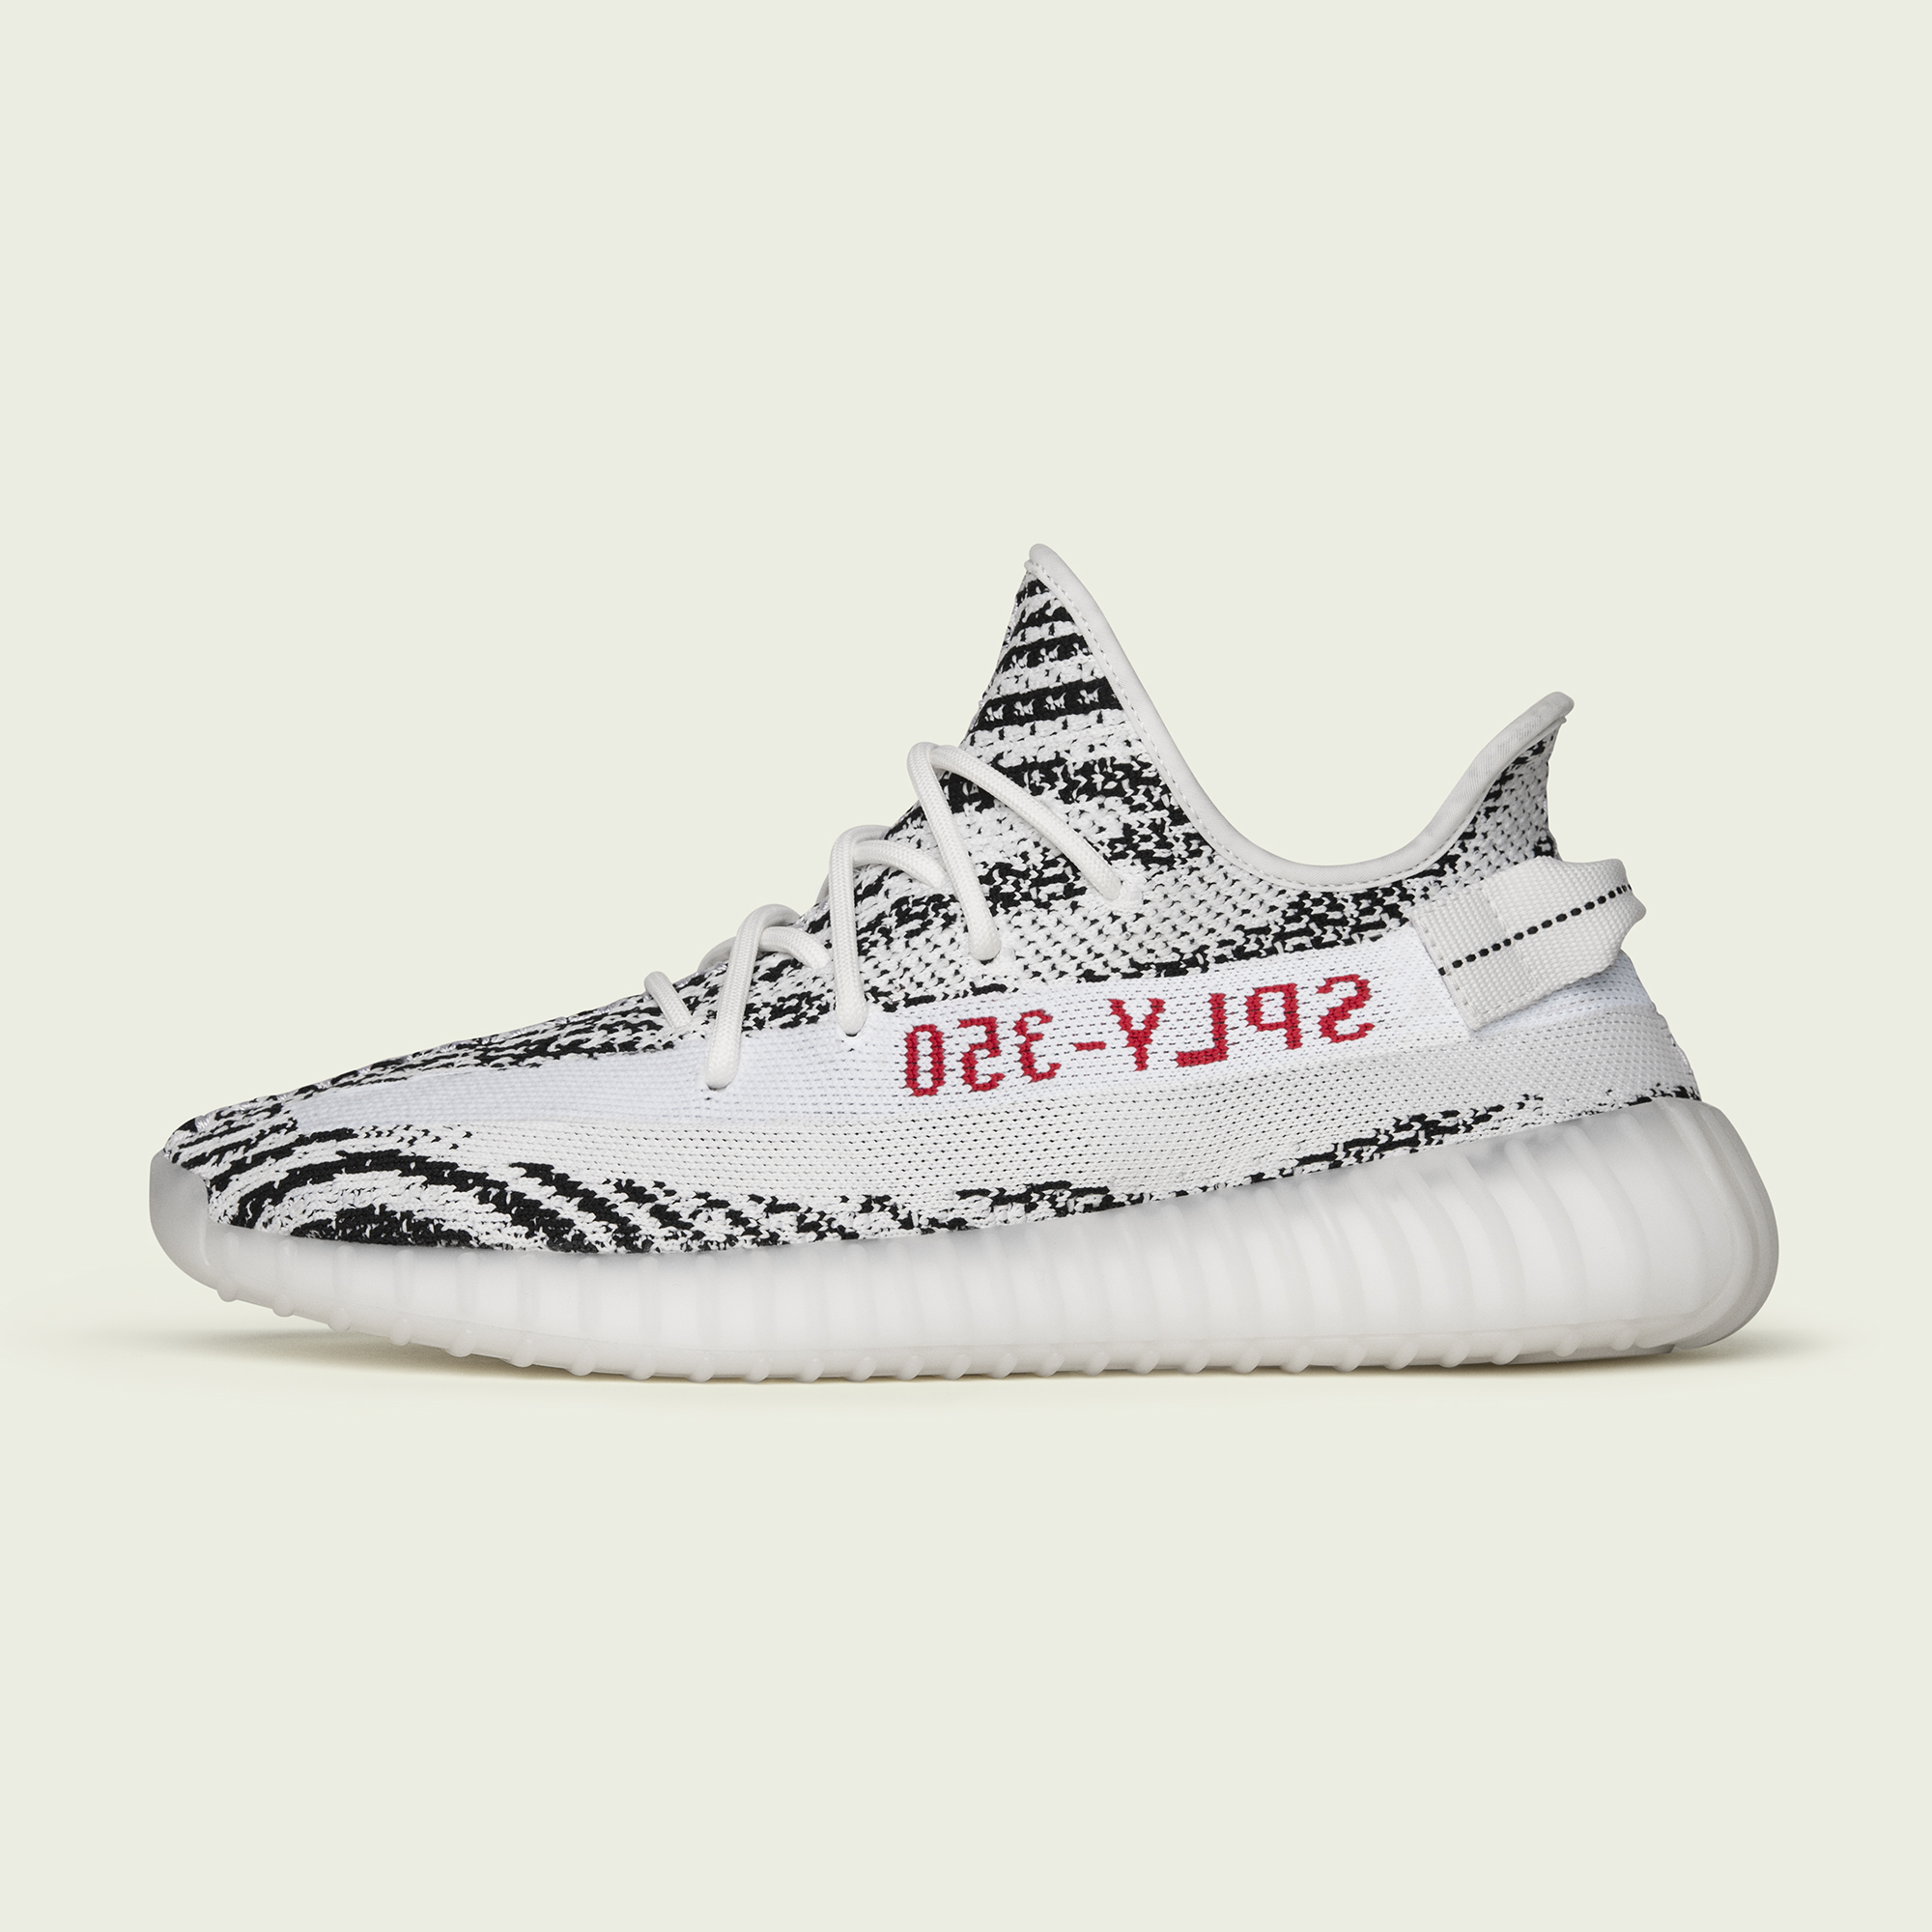 Frist Look Best UA Yeezy boost 350 V2